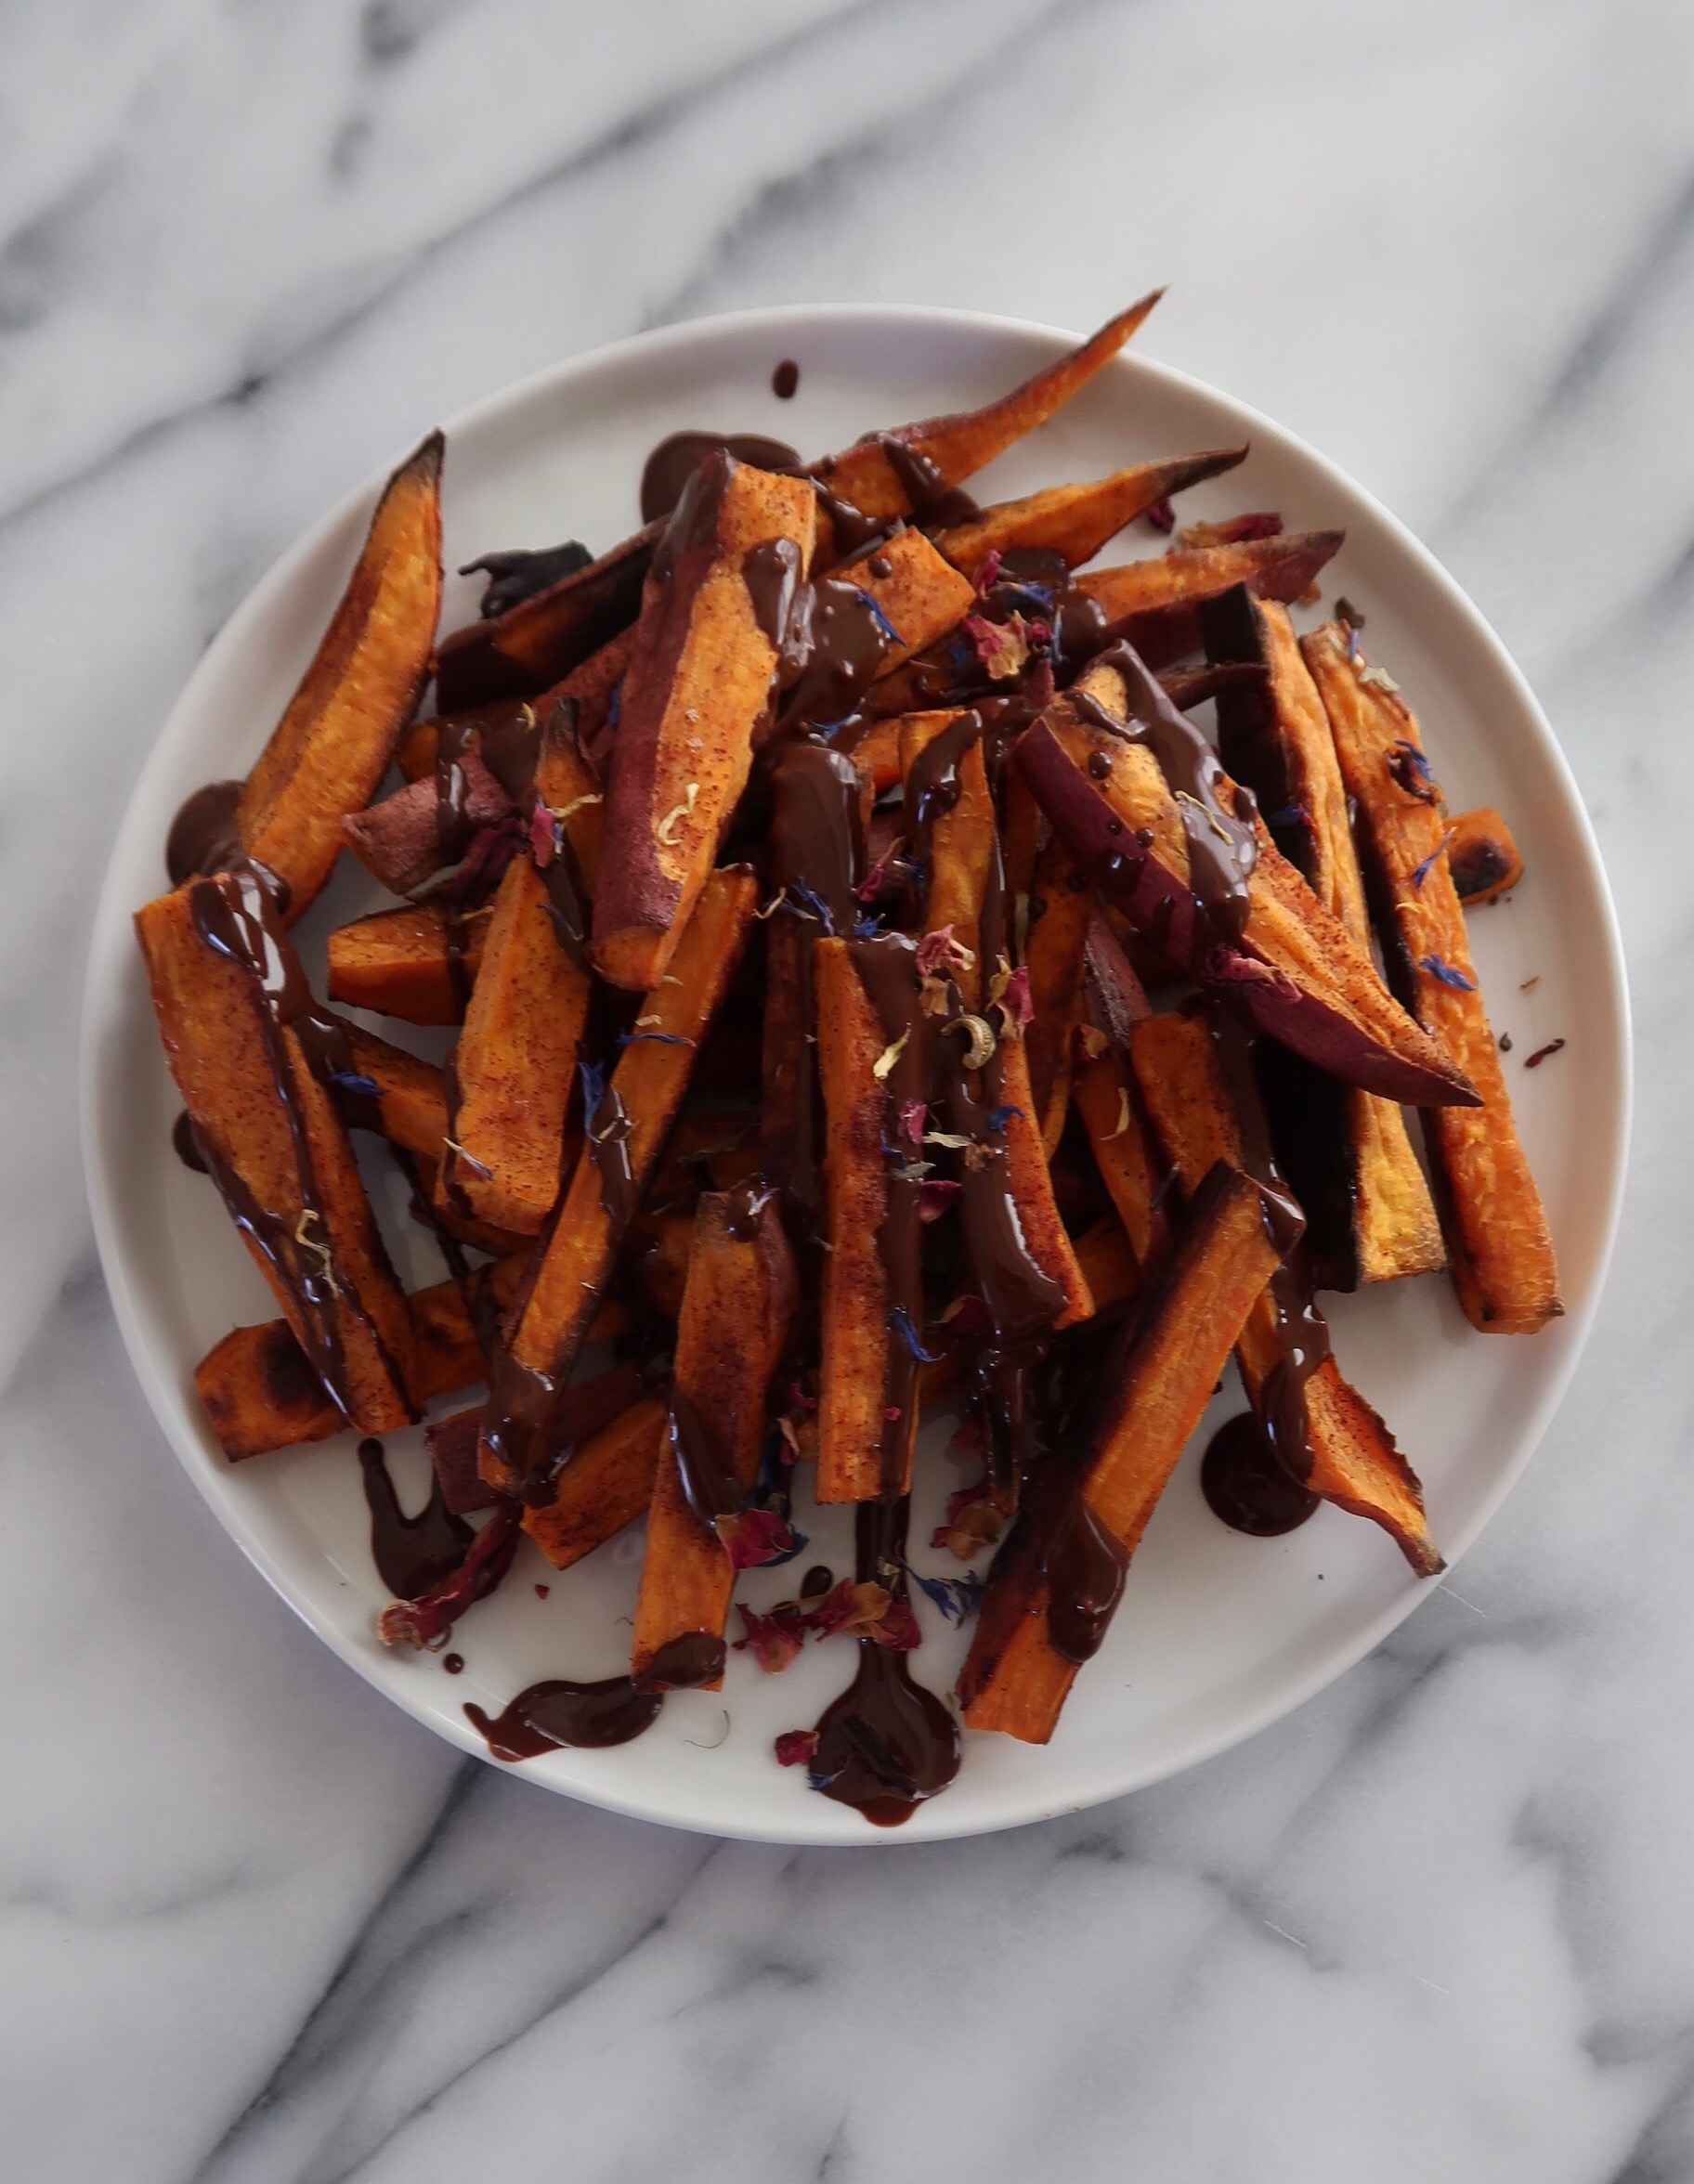 CINNAMON SWEET POTATO FRIES WITH PALEO CHOCOLATE SAUCE - INGREDIENTS3 medium (orange) sweet potatoes (though Japanese sweet potatoes work well also)2 tb avocado oil2 tsp cinnamon2 tsp coconut sugar1 Hu Kitchen chocolate bar of choice (I used the Almond Butter Puffed Quinoa bar)